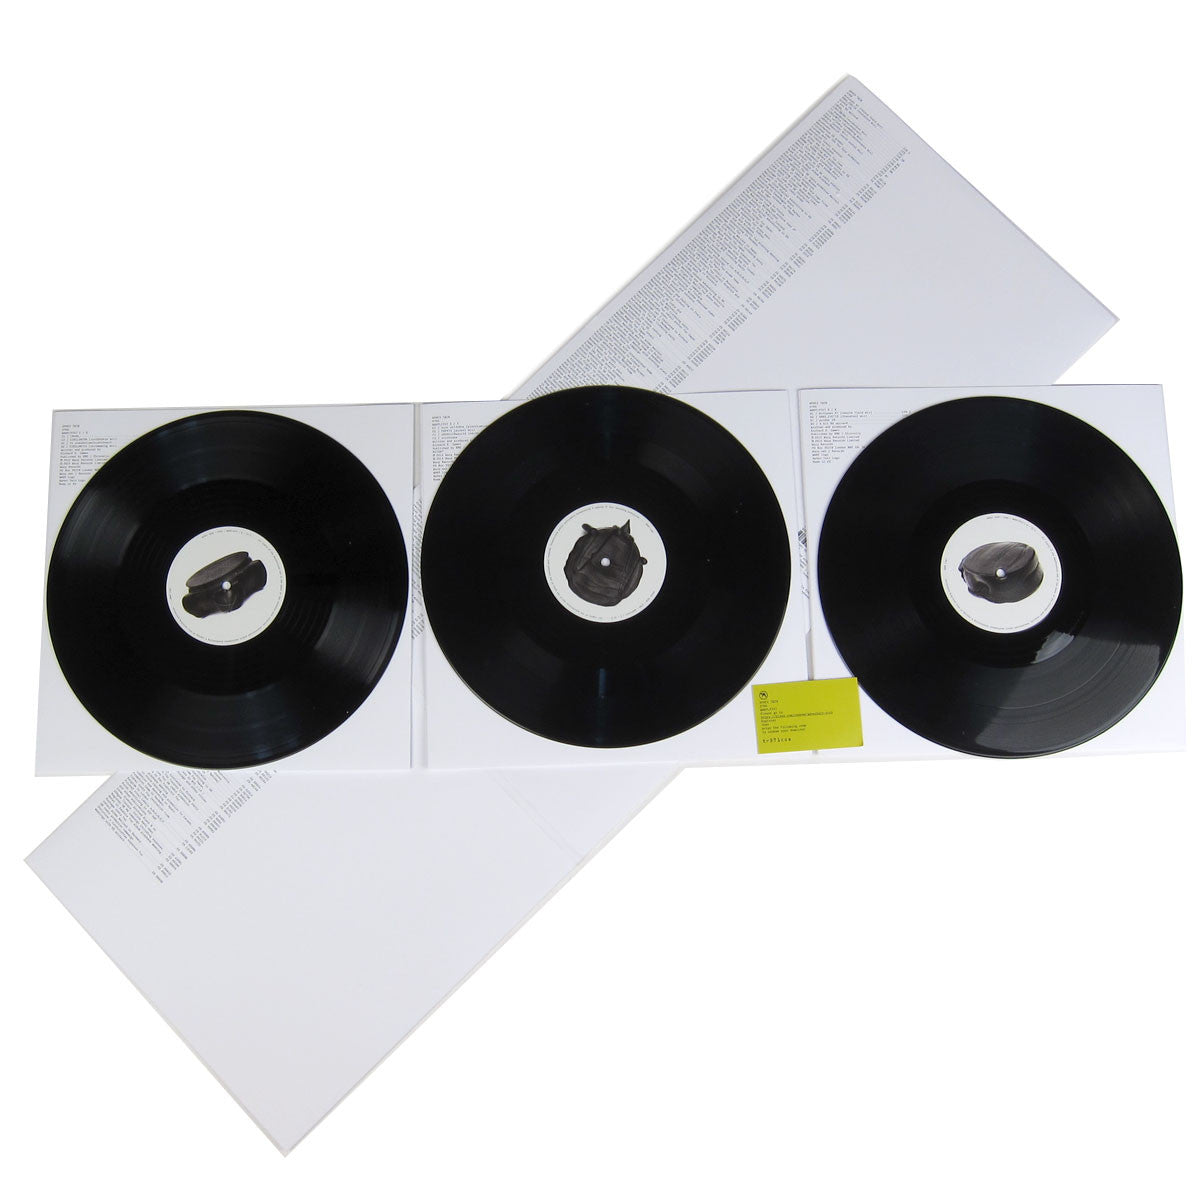 Aphex Twin: Syro (Free MP3) Vinyl 3LP detail